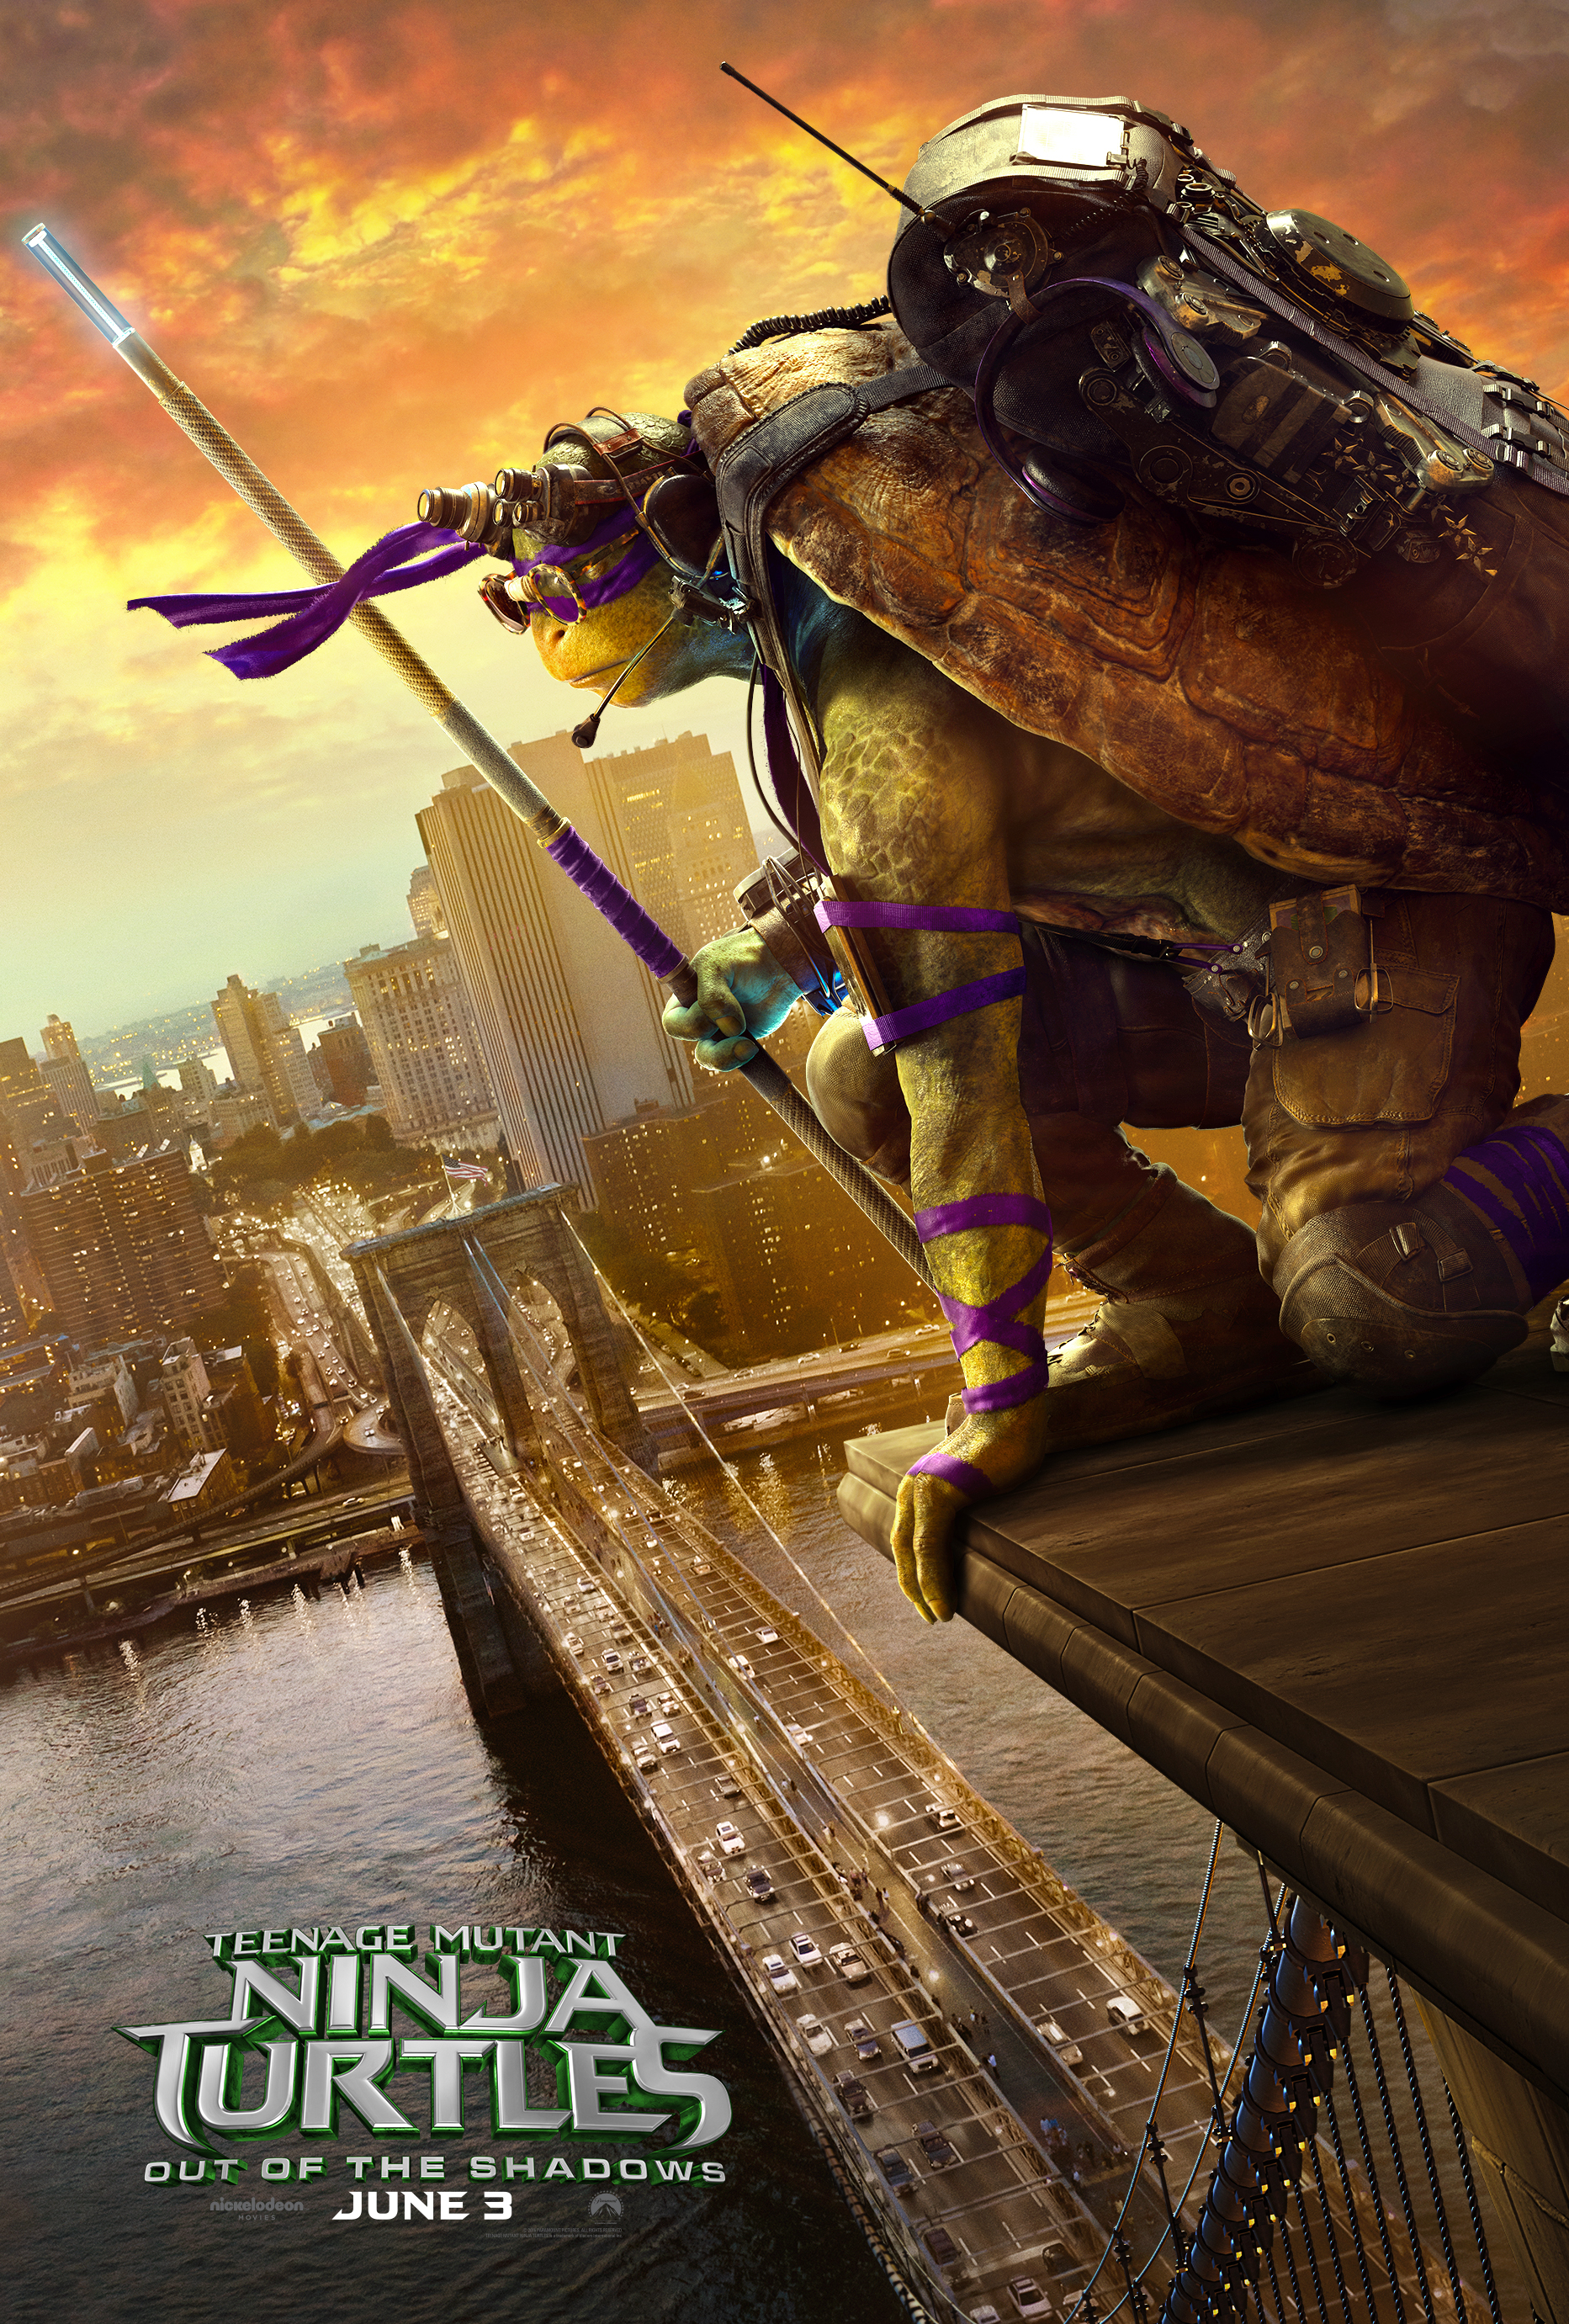 tmnt-2-out-shadows-poster-donatello.jpg